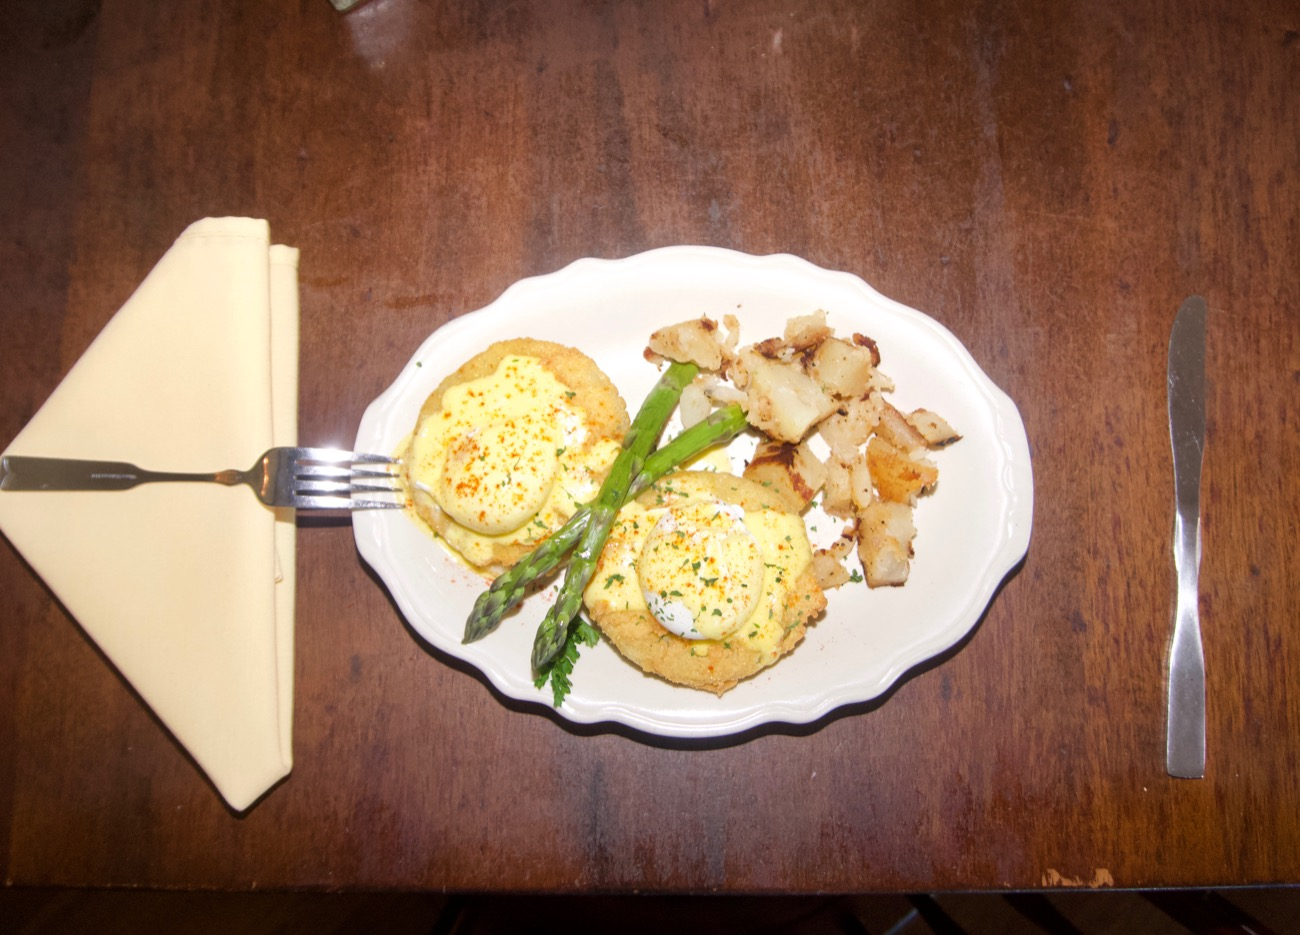 Southern eggs Benedict, with Canadian ham, fried green tomatoes, and asparagus / Image: Brian Planalp // Published: 6.18.18